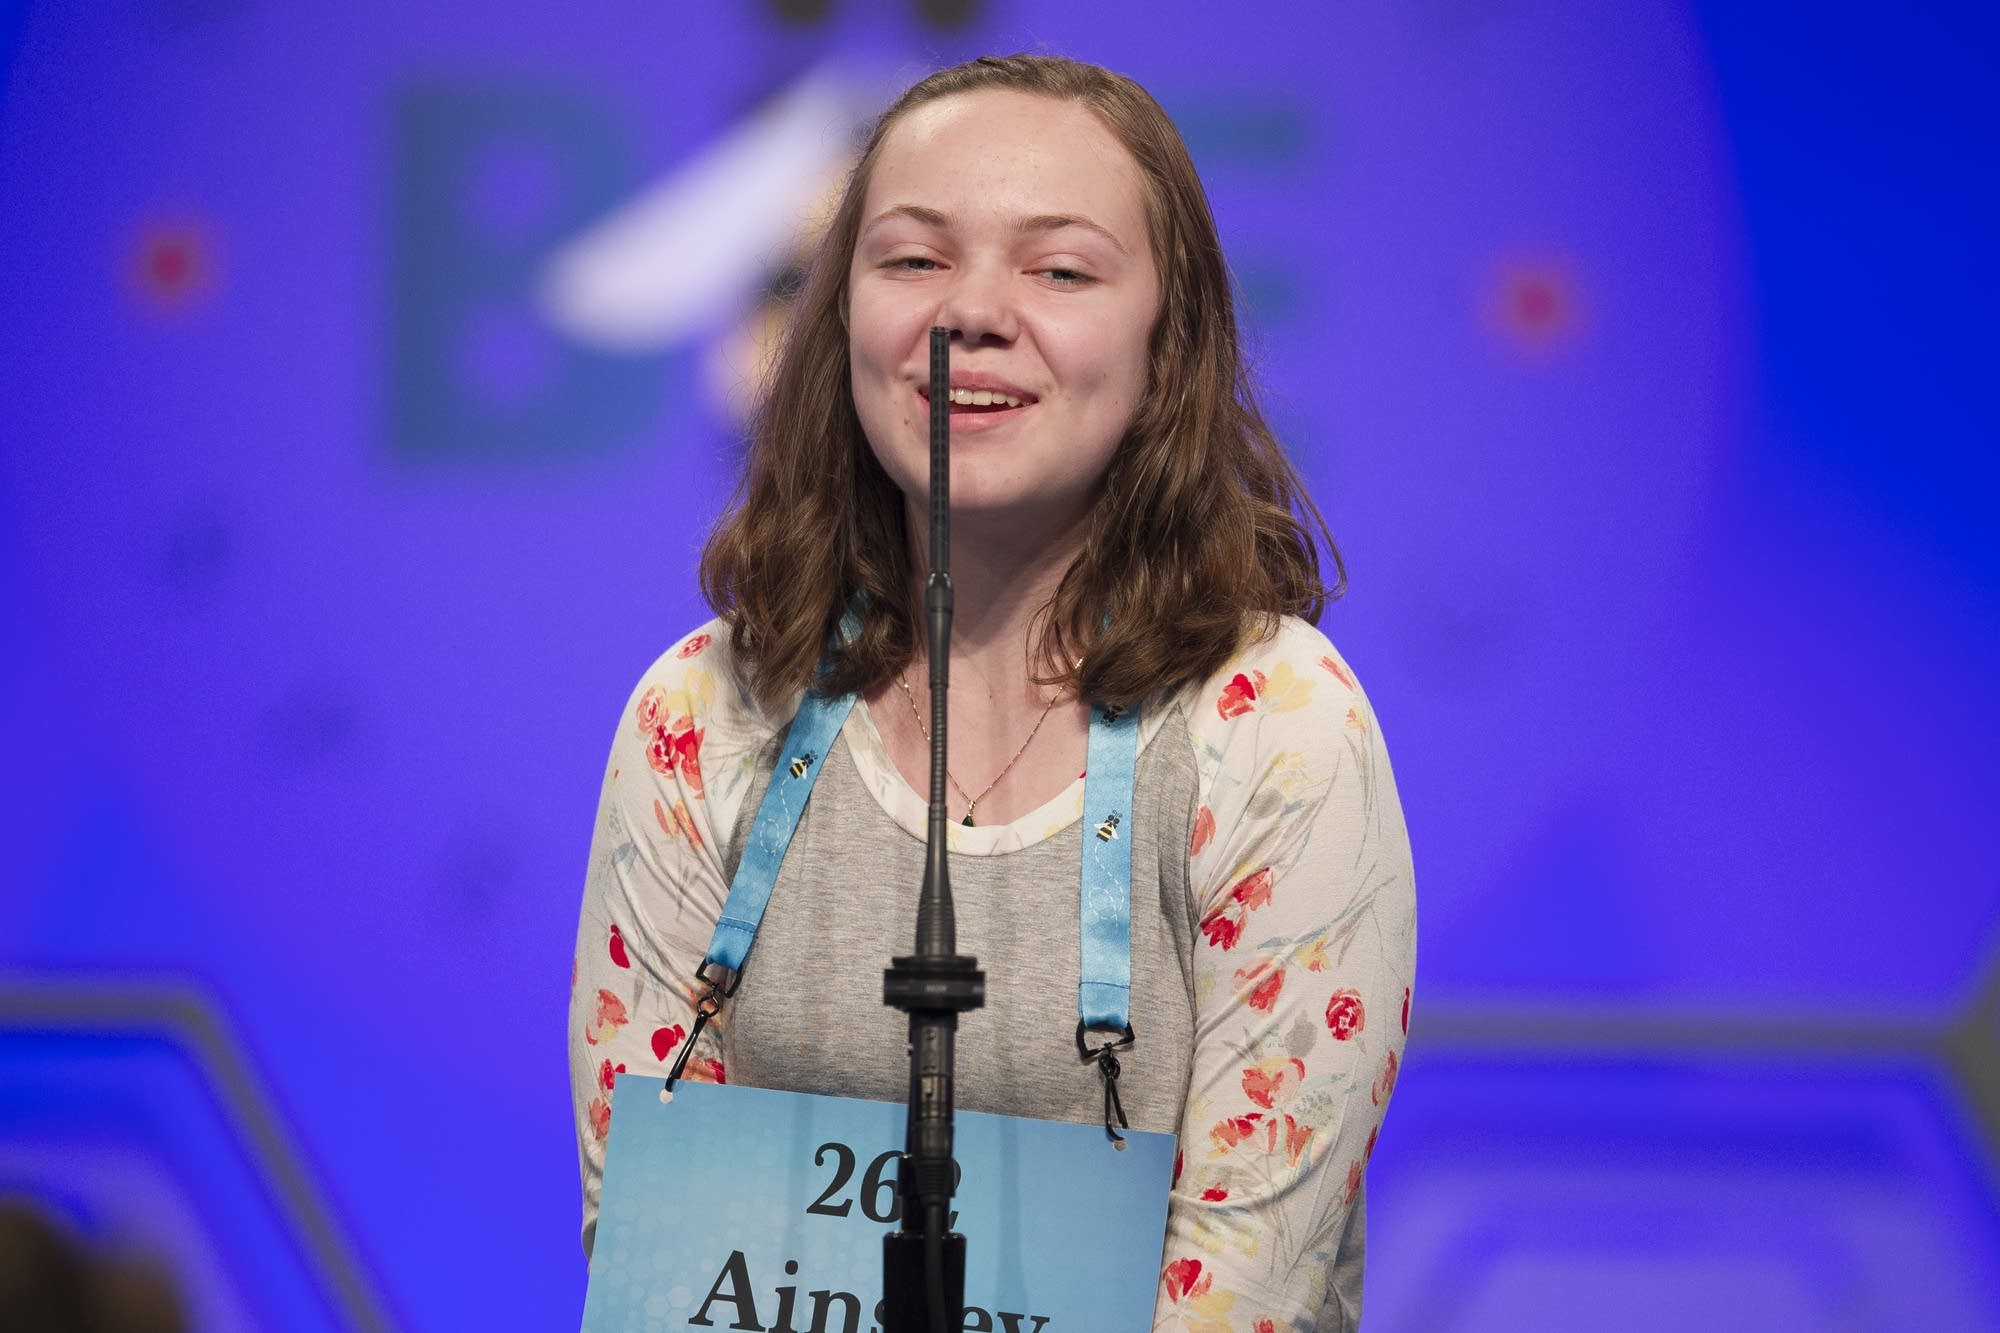 Ainsley Boucher, 13, from Crookston, Minn., spells her word correctly.